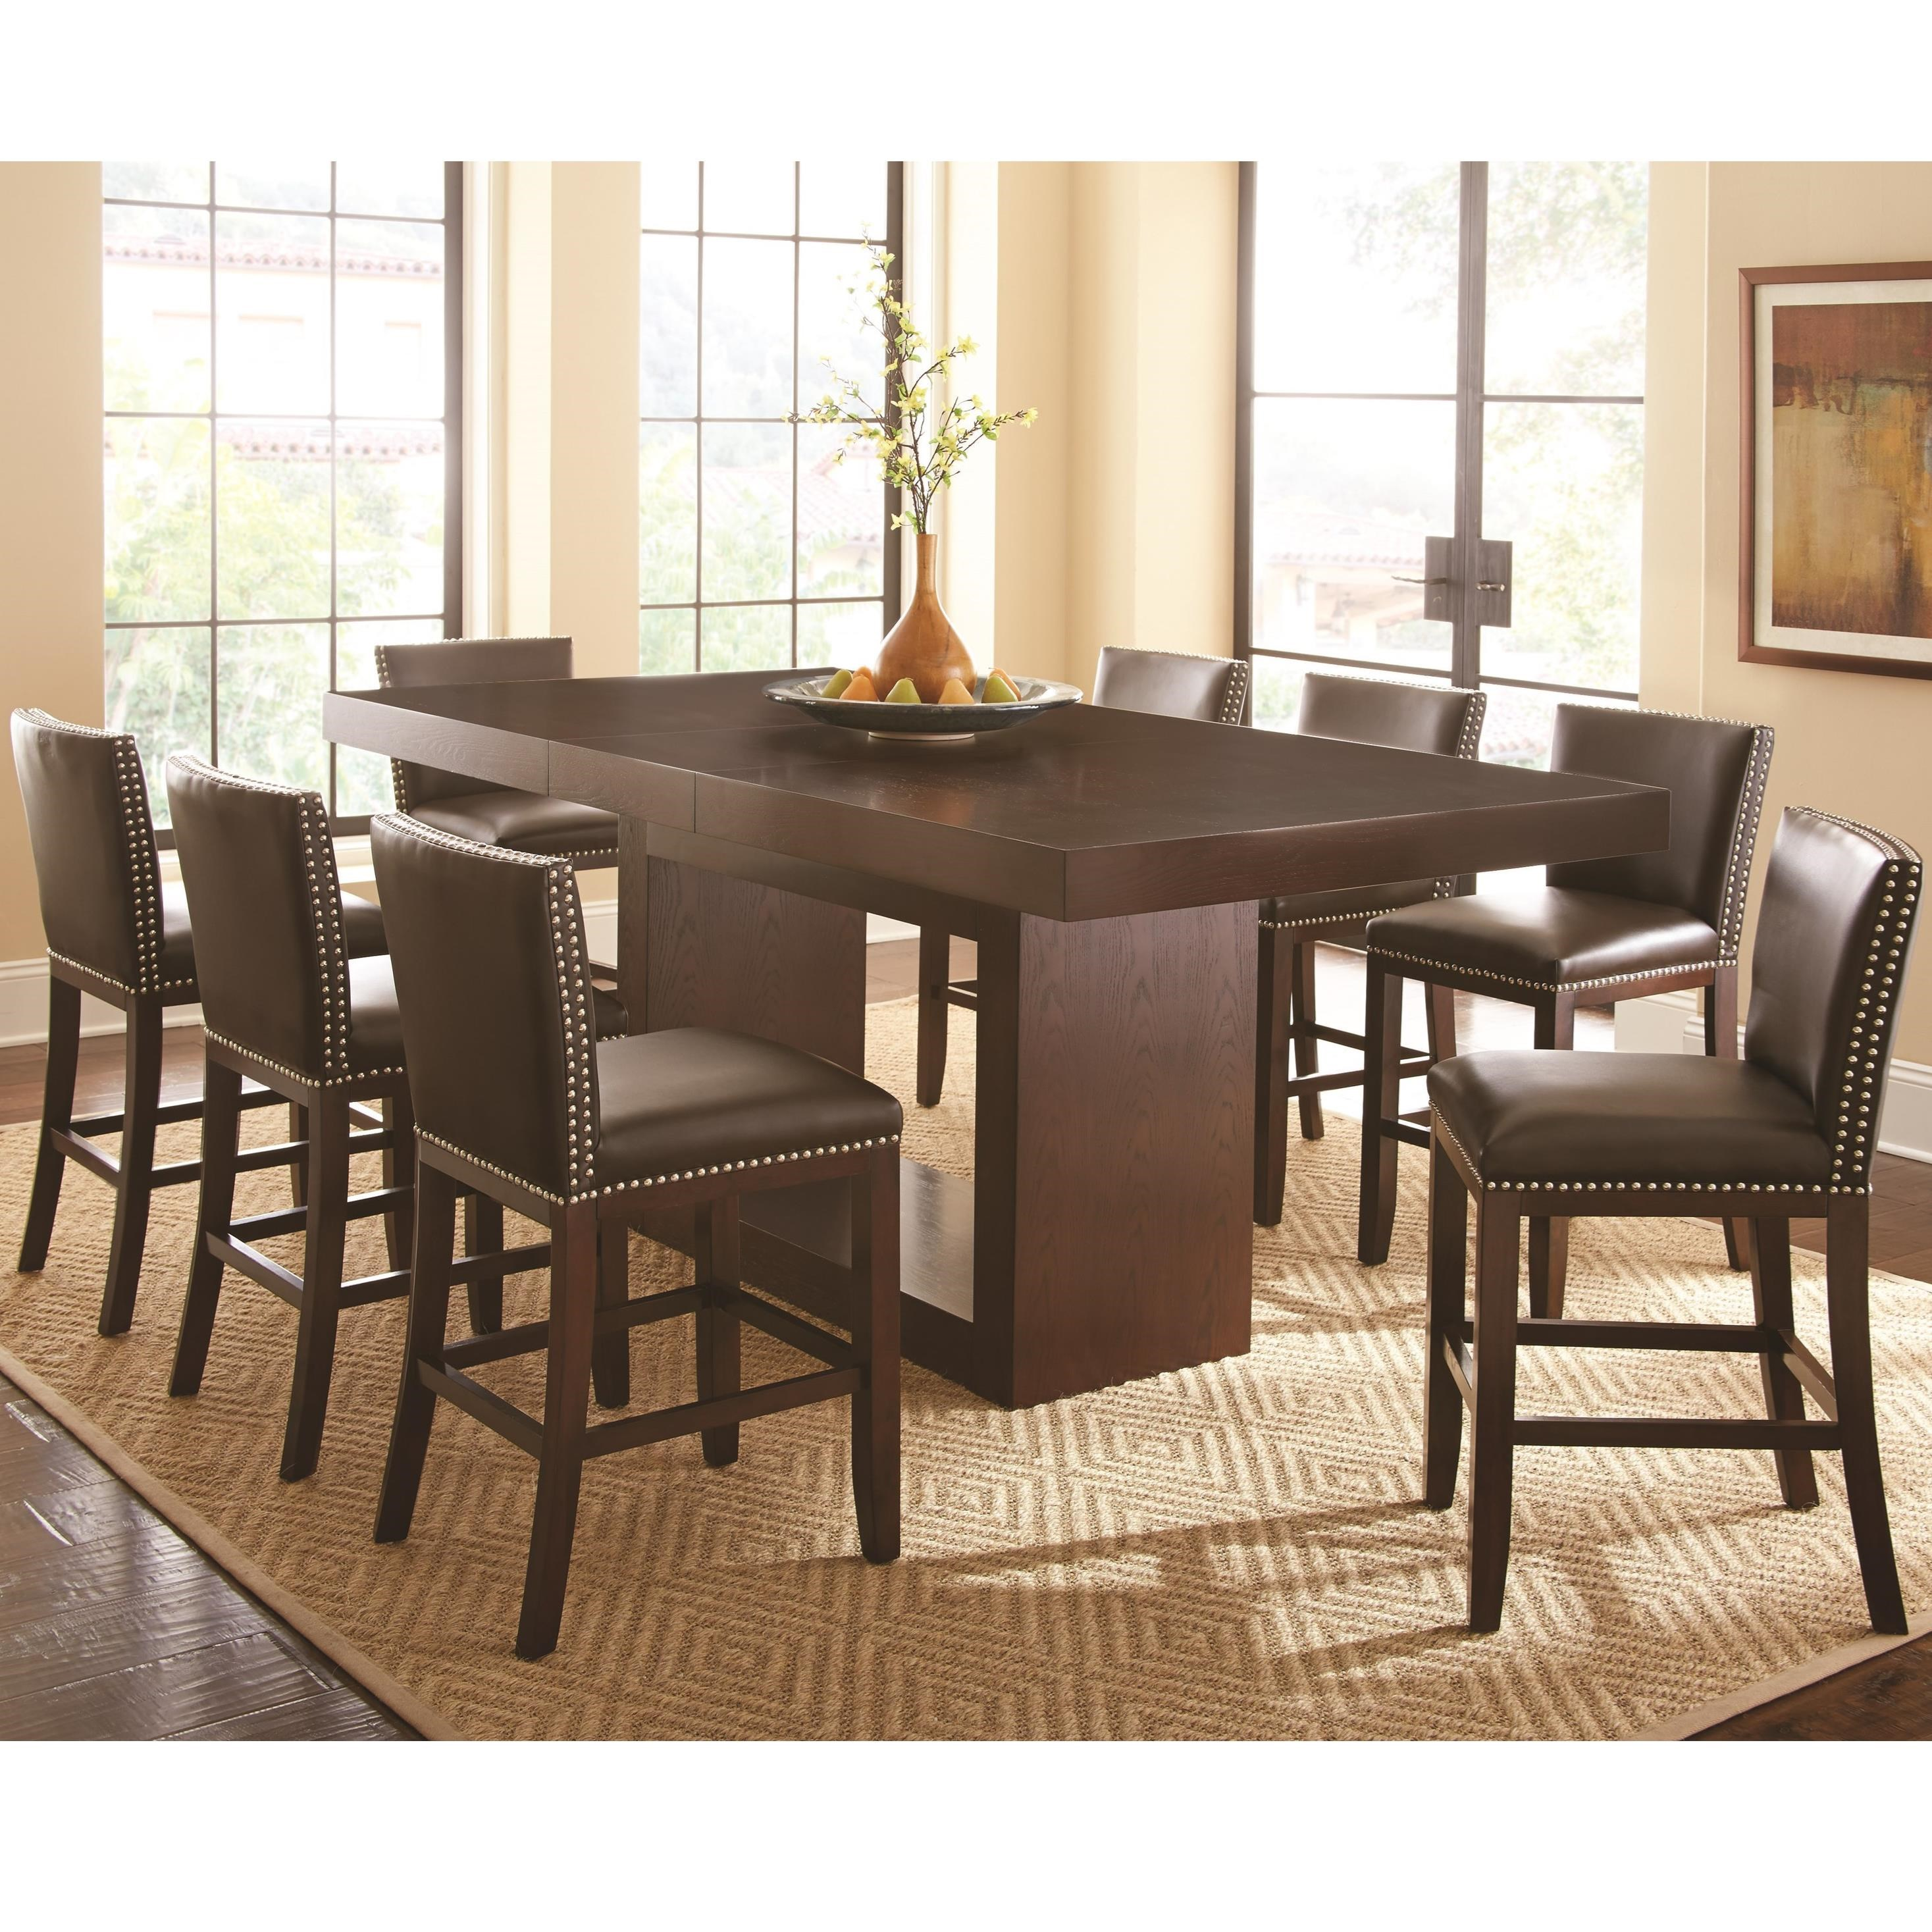 Steve Silver Antonio 9 Piece Counter Height Dining Set